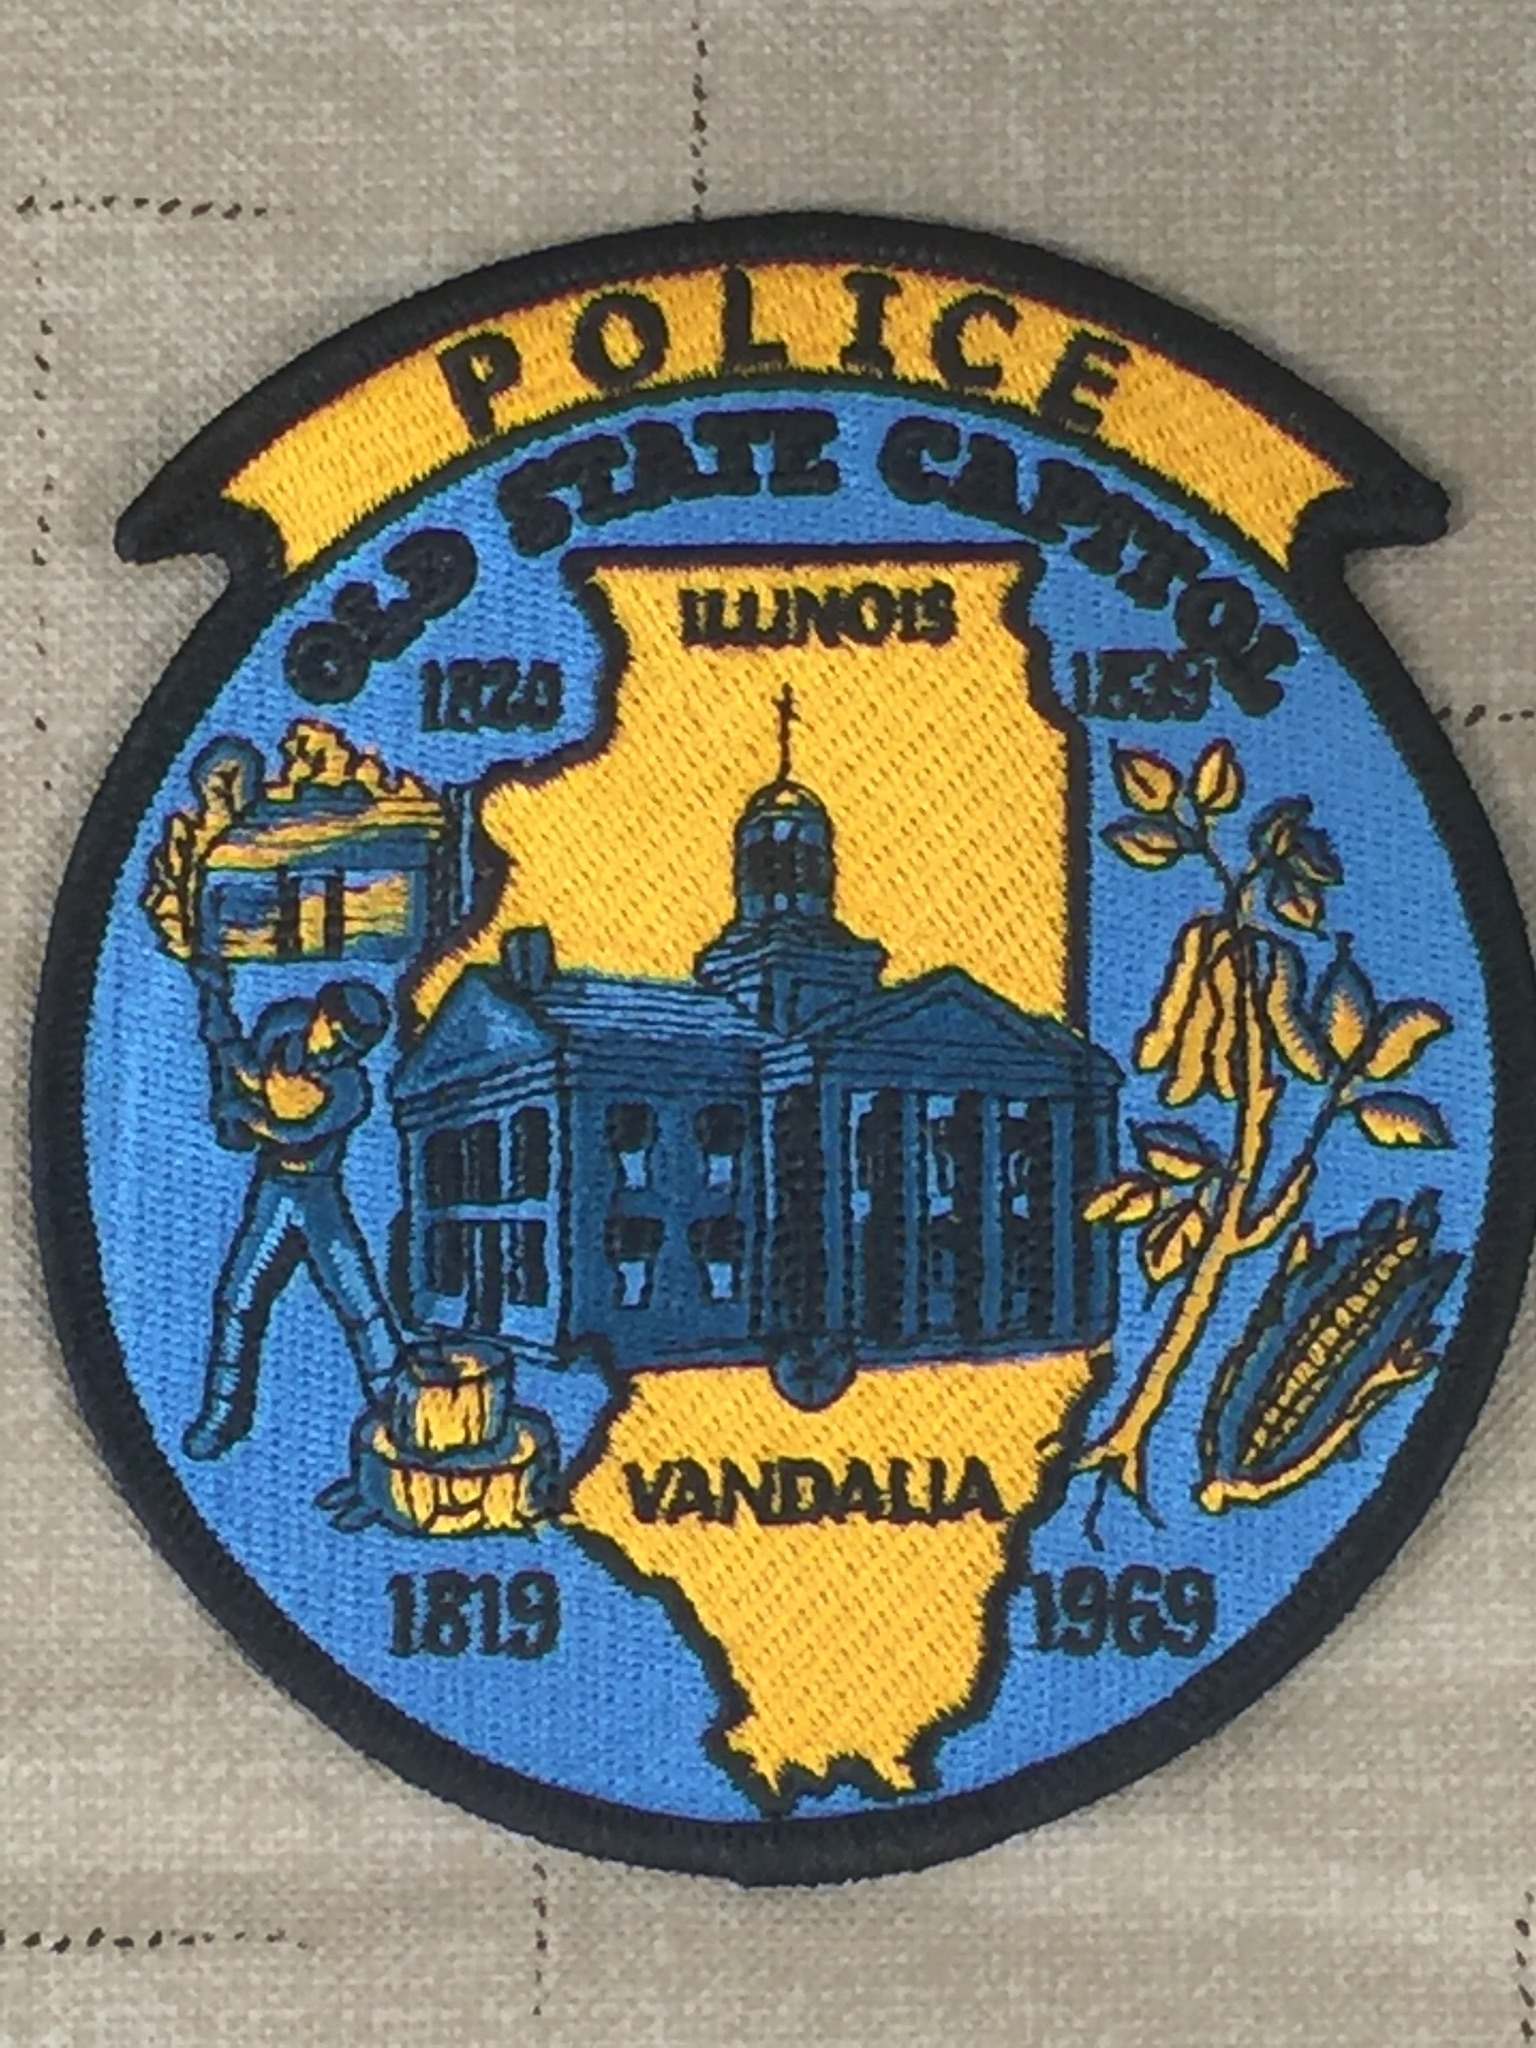 Vandalia man arrested following standoff that involved a SWAT Team